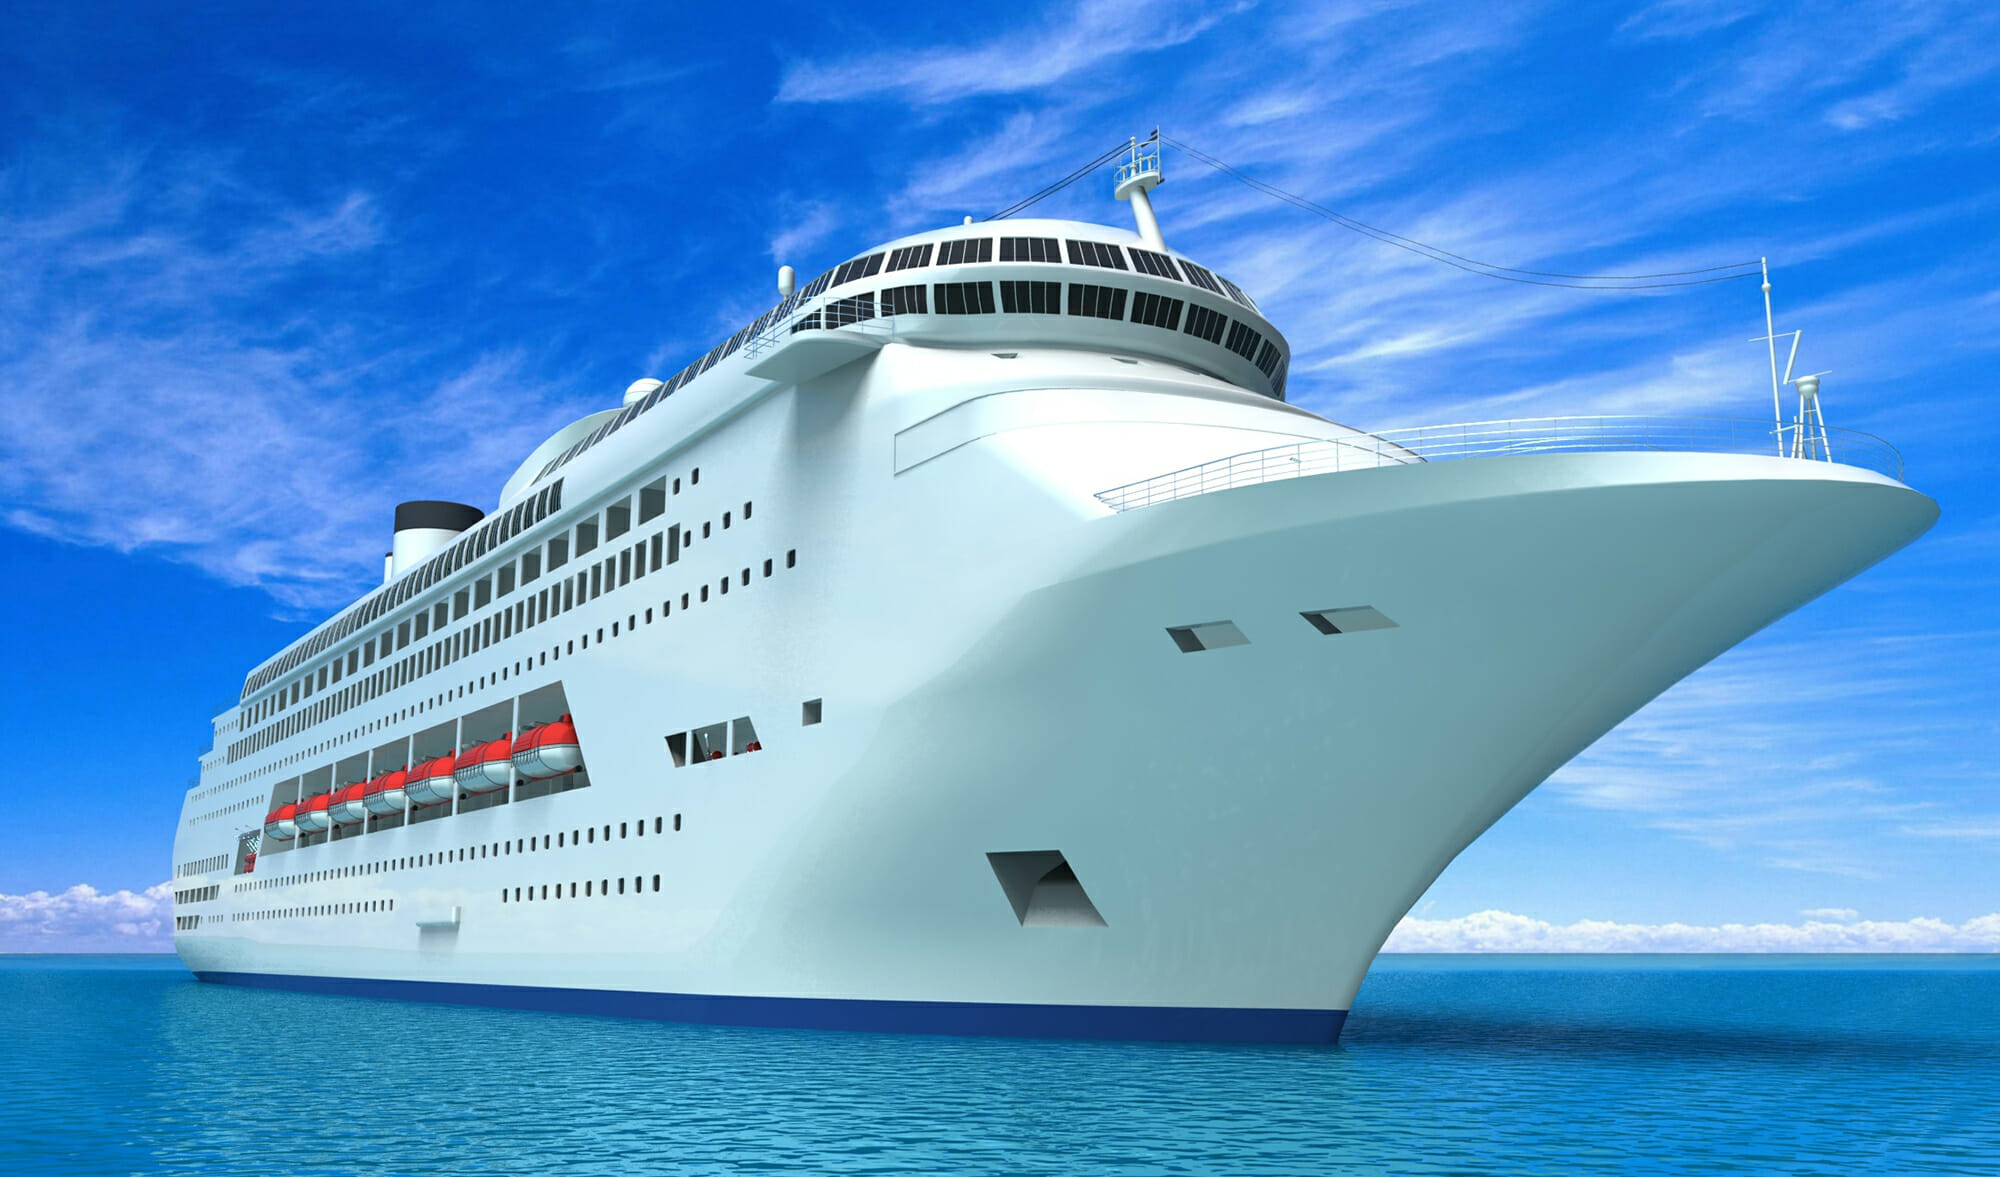 Cruise Port transfer limo service